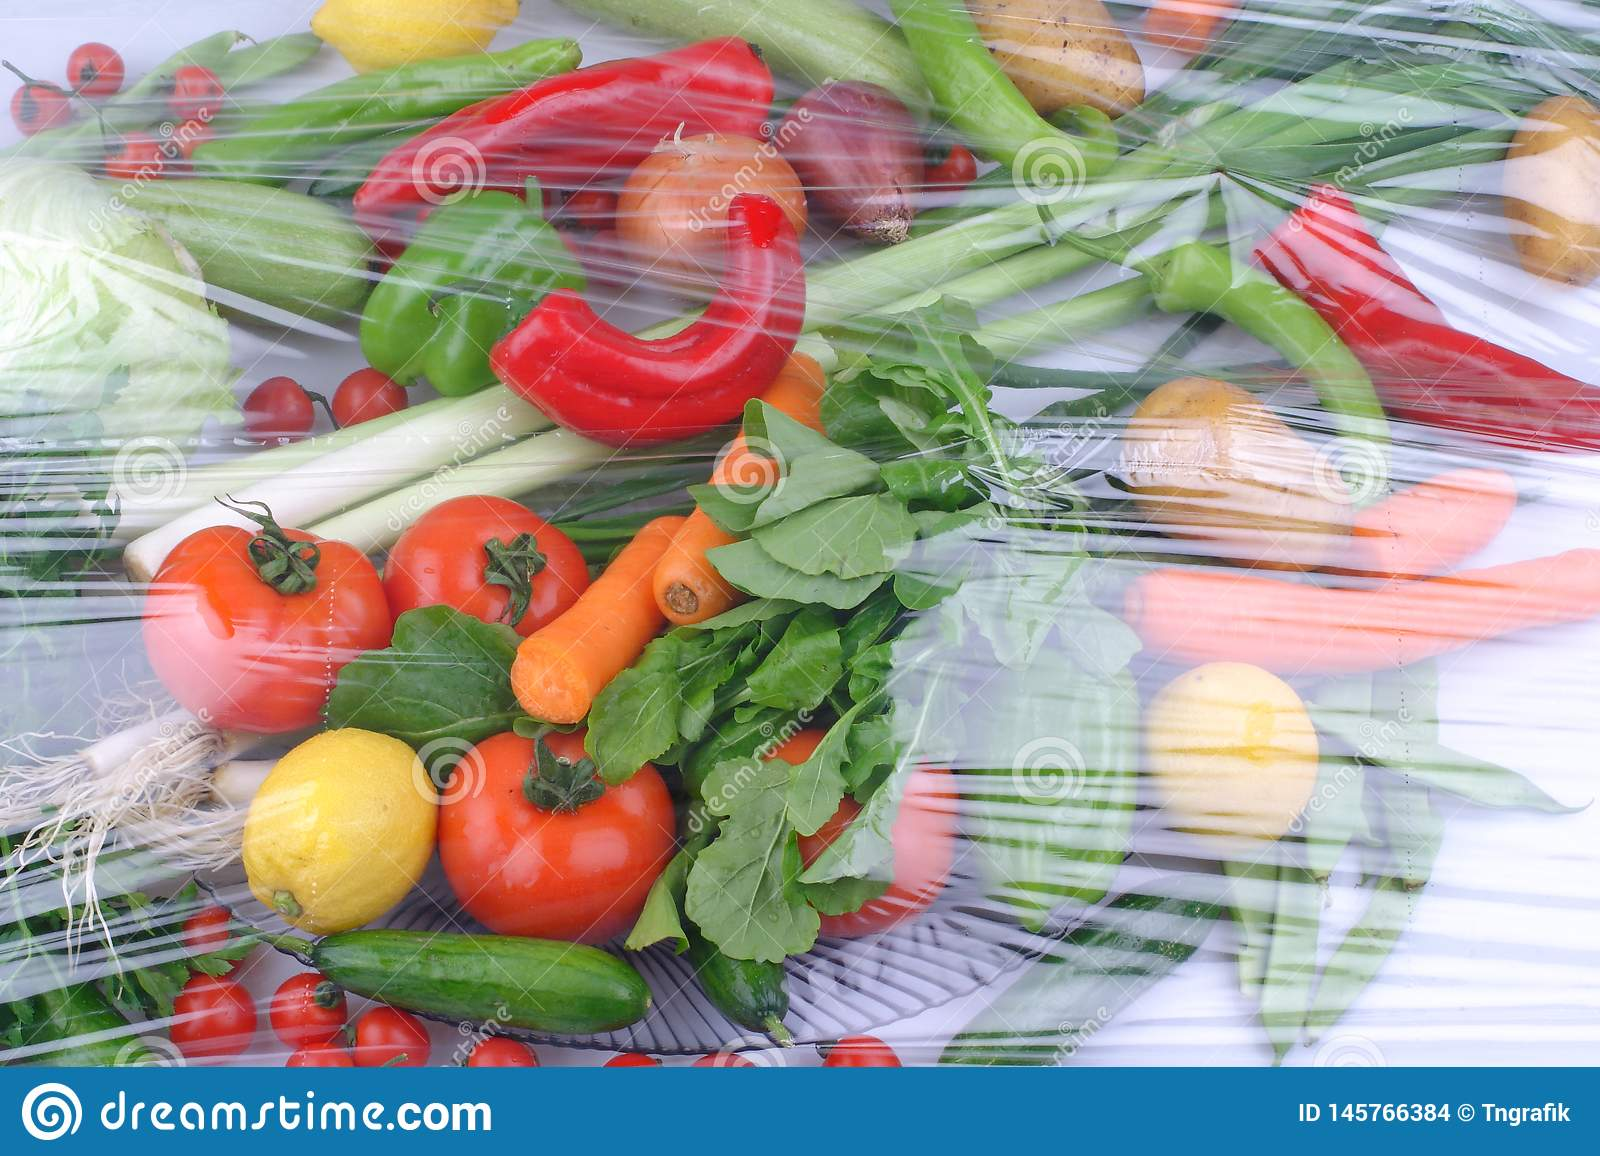 Variety of fresh raw organic fruits and vegetables in light brown containers sitting on bright blue wooden background